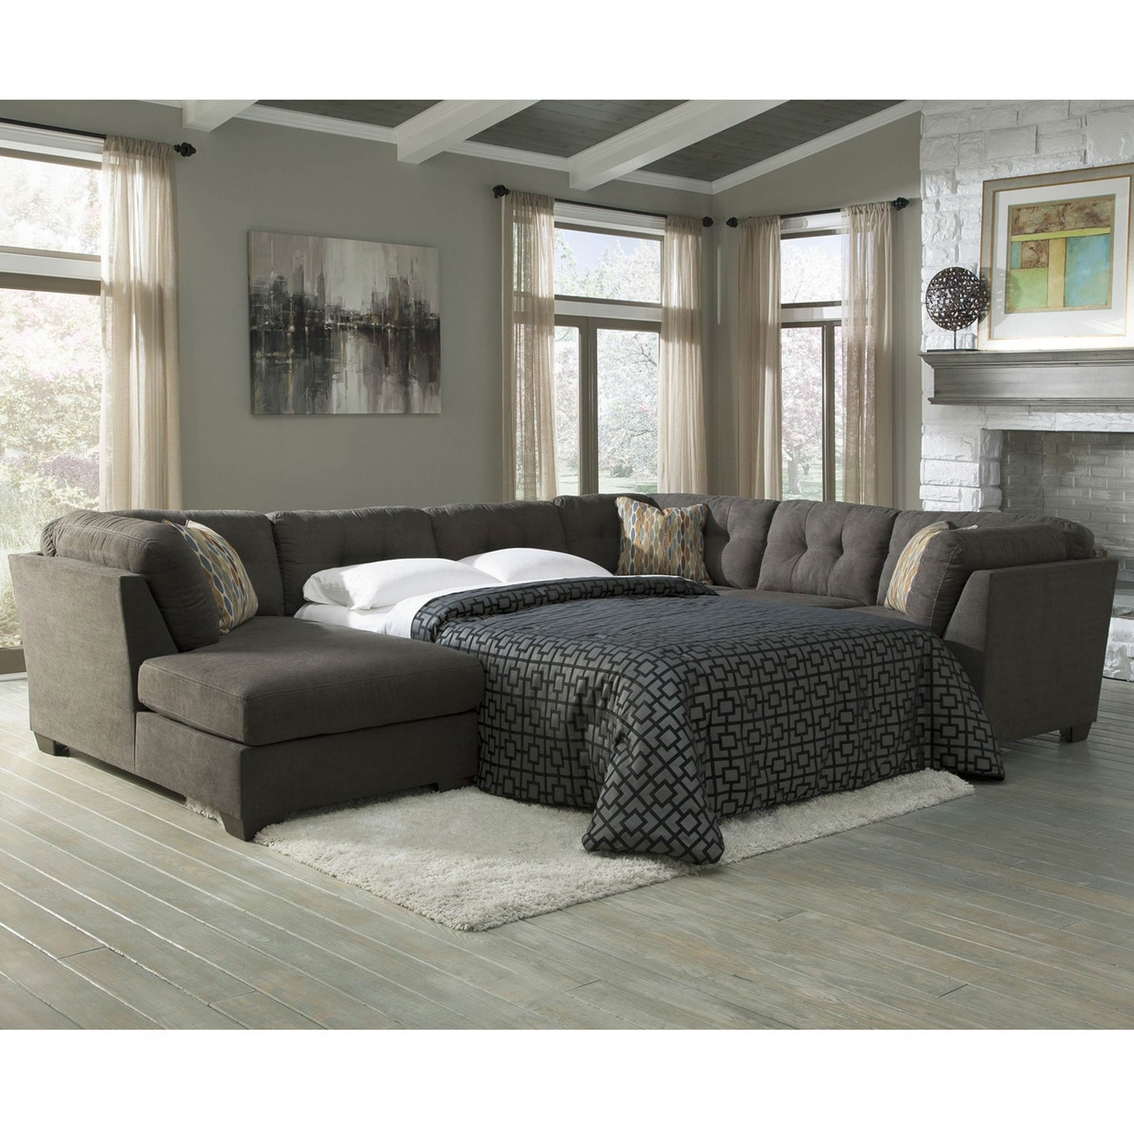 Benchcraft Delta City 3 Pc. Sleeper Sectional LAF Chaise